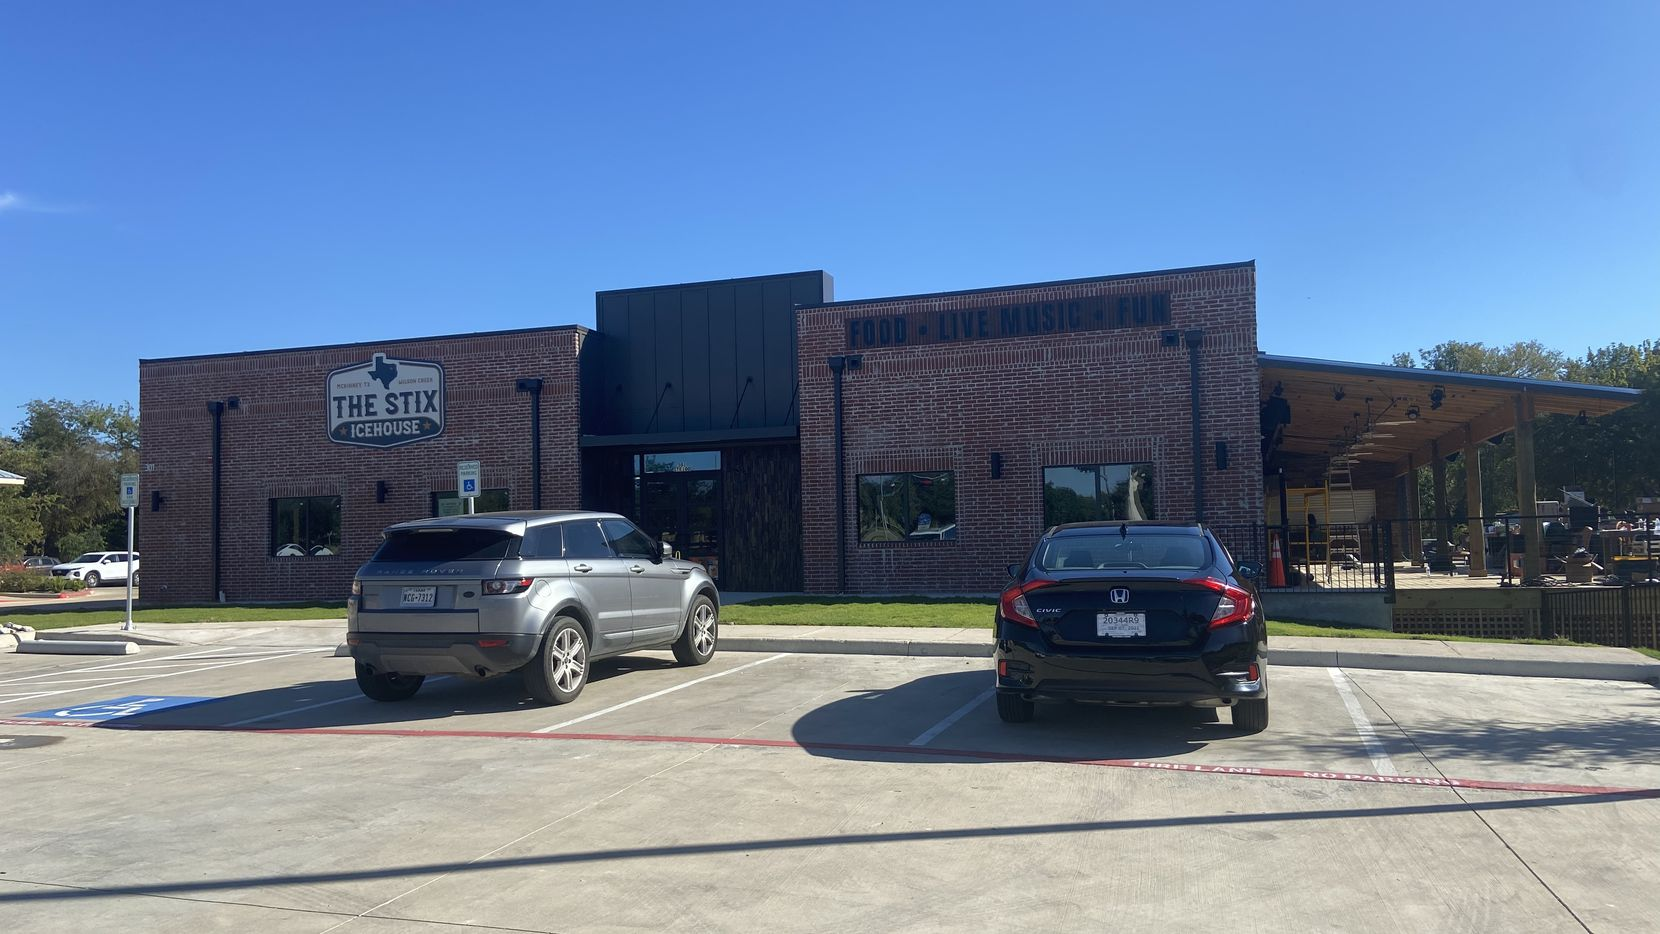 The Stix Icehouse open in McKinney on October 22.